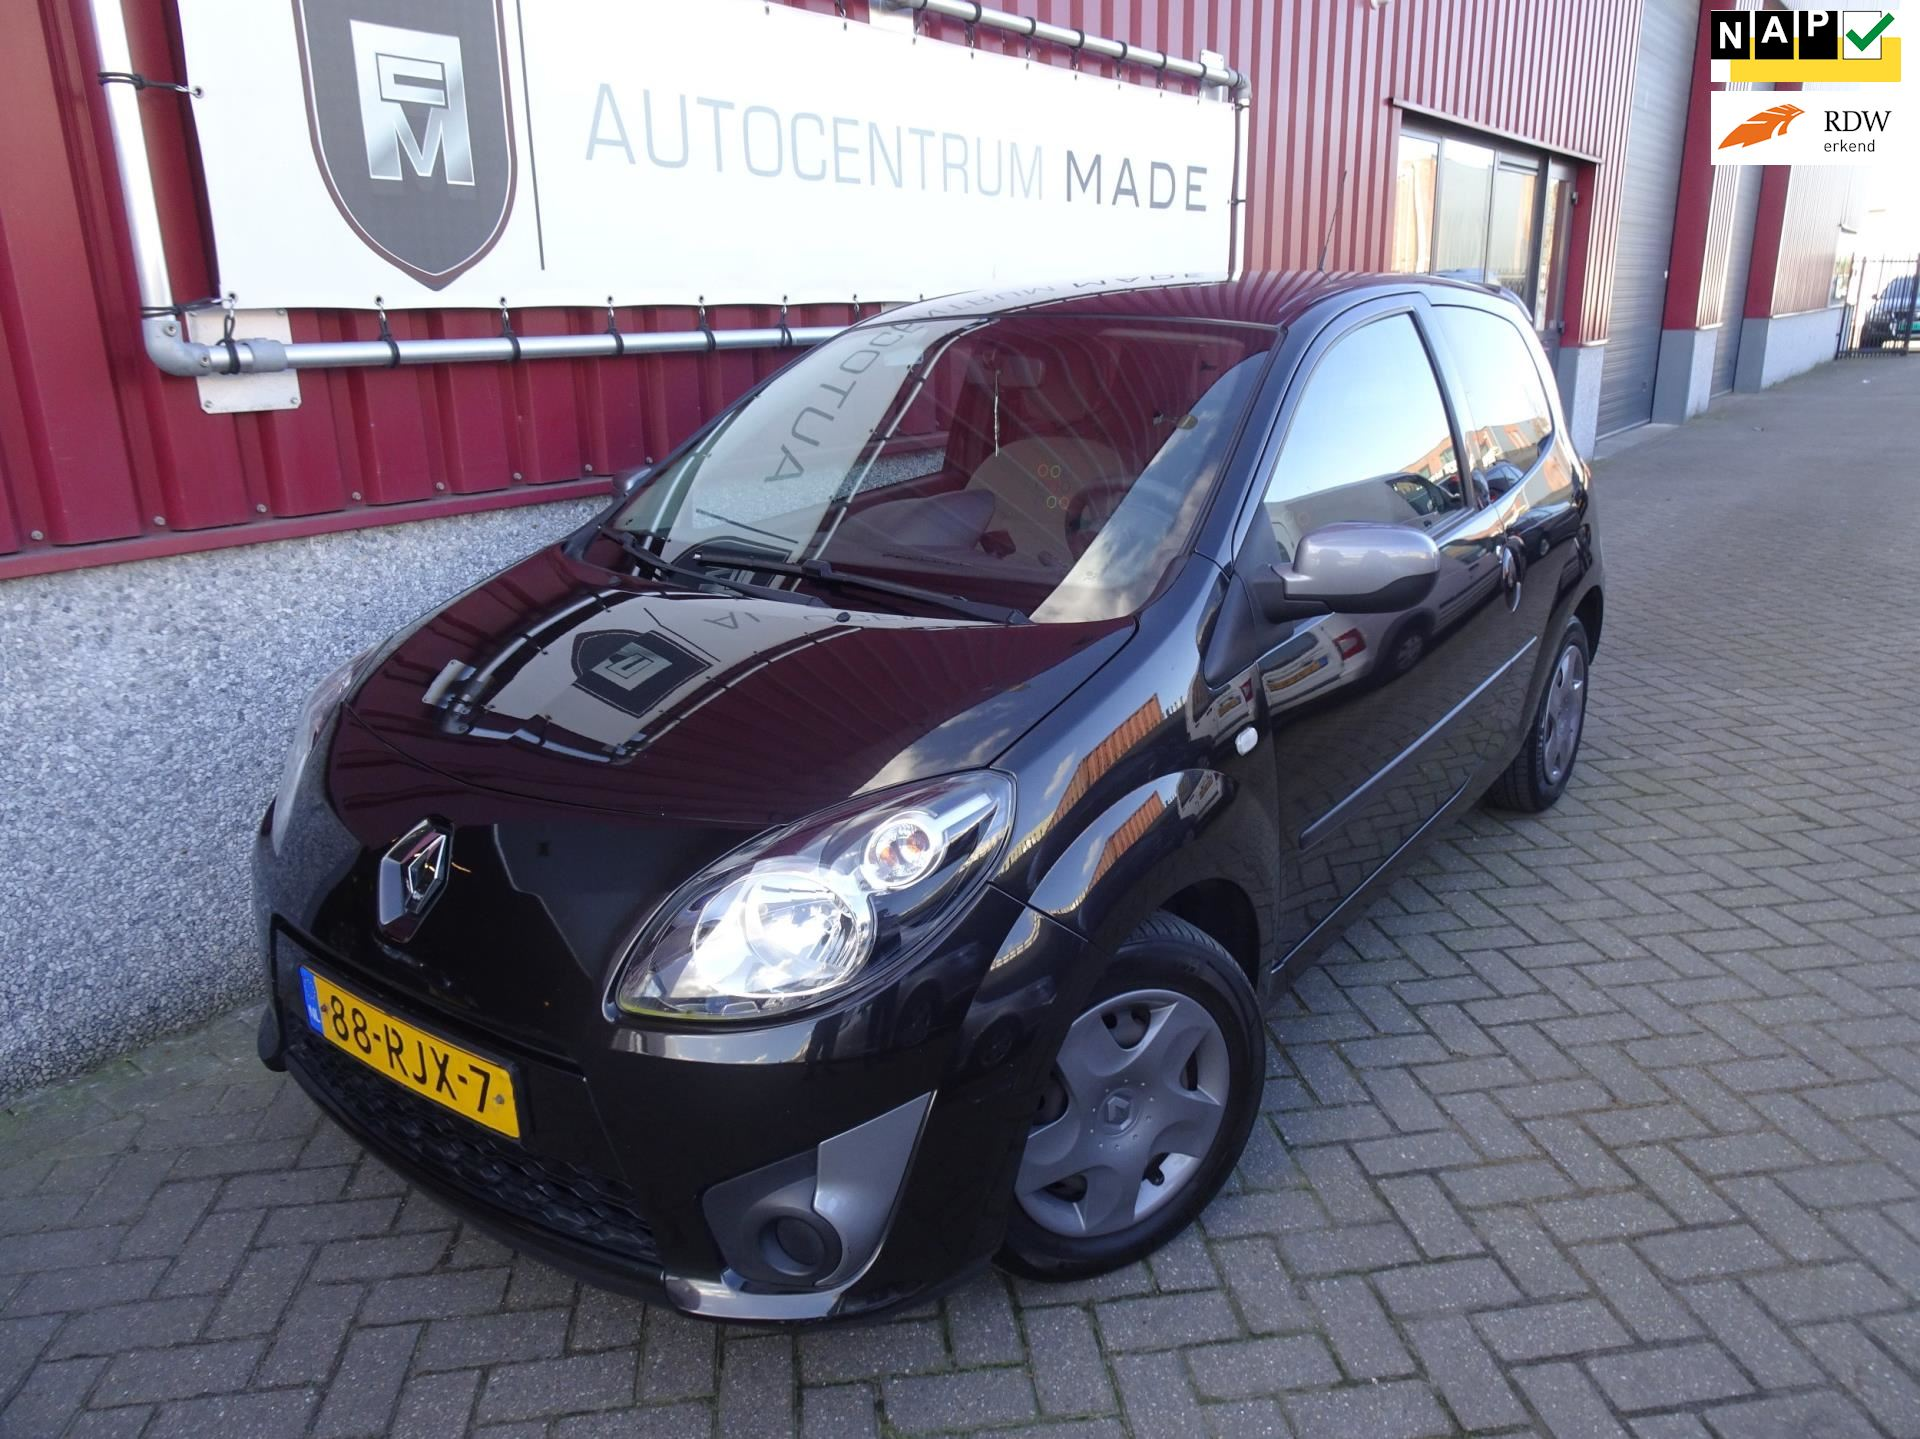 Renault Twingo occasion - Auto Centrum Made